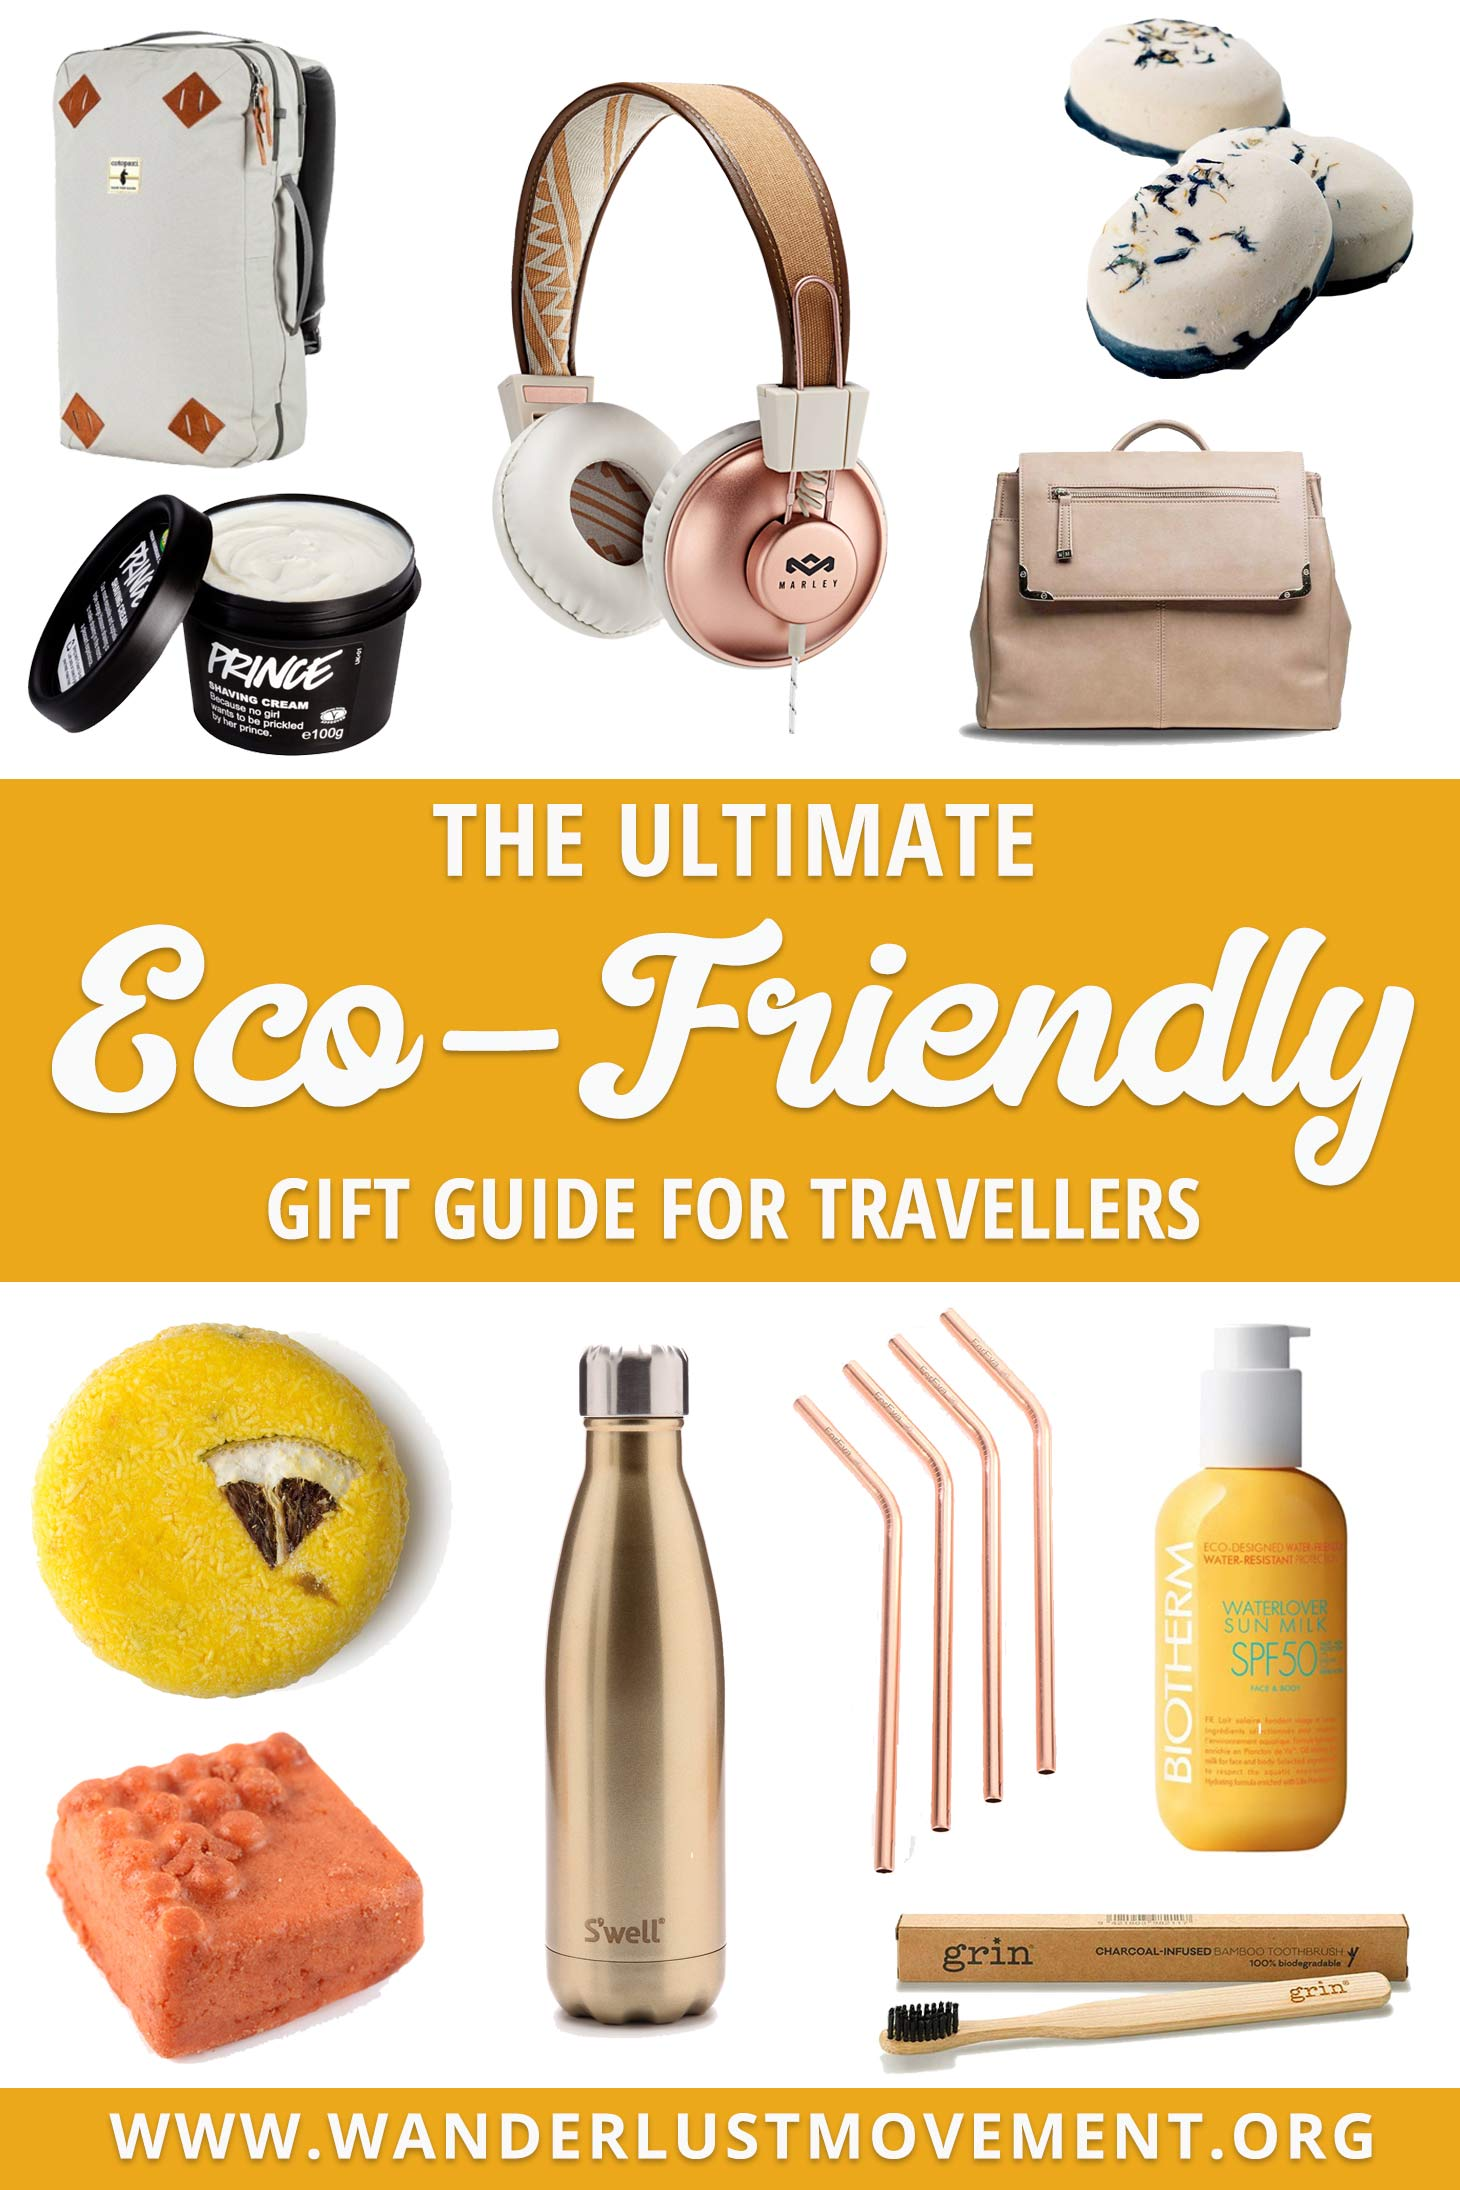 Searching for gifts that come with a low carbon footprint or zero waste? Not sure what to get the budding environmentalist/traveller in your life? I got ya back gurl. Here's my eco-friendly gift guide!| Eco-friendly Gifts | Eco-friendly Gift Ideas | Gift guide for her |#giftguides #zerowaste #traveltips